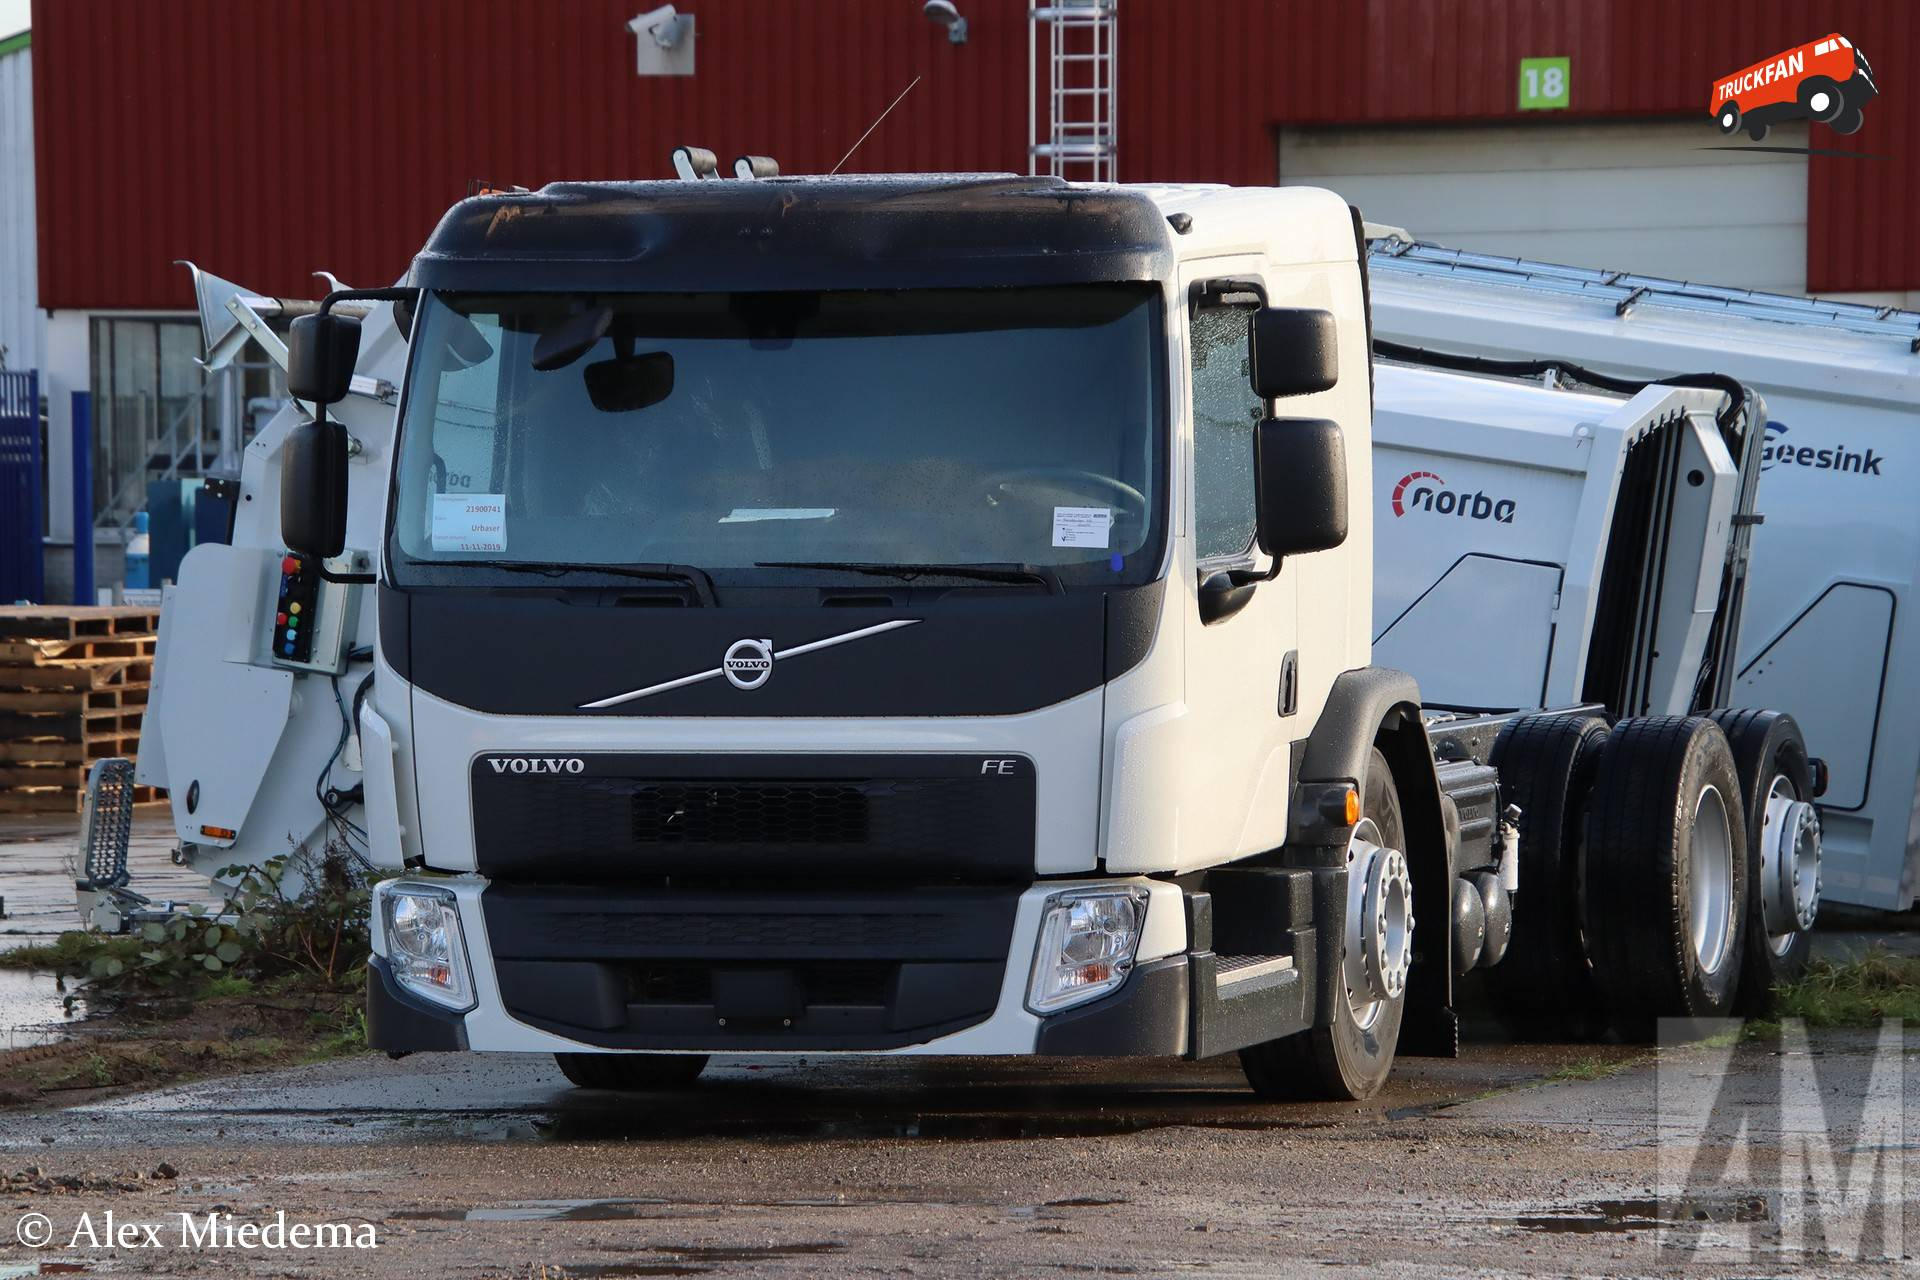 Volvo FE Low Entry